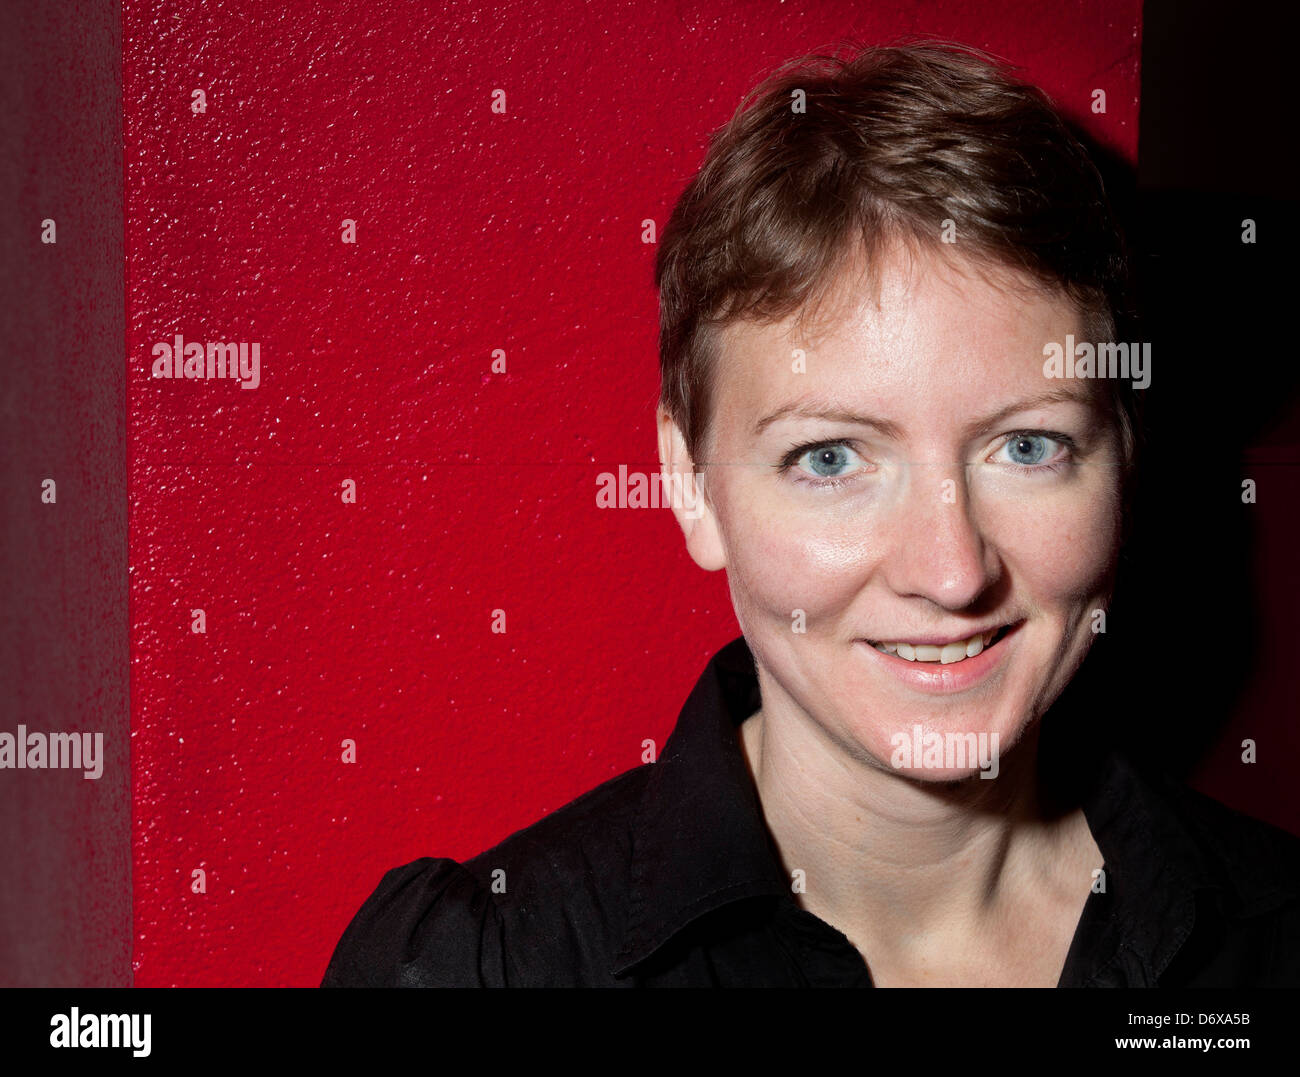 Award winning Playwright Zinnie Harris.  Associate Director of The Traverse Theatre from April 2015. - Stock Image